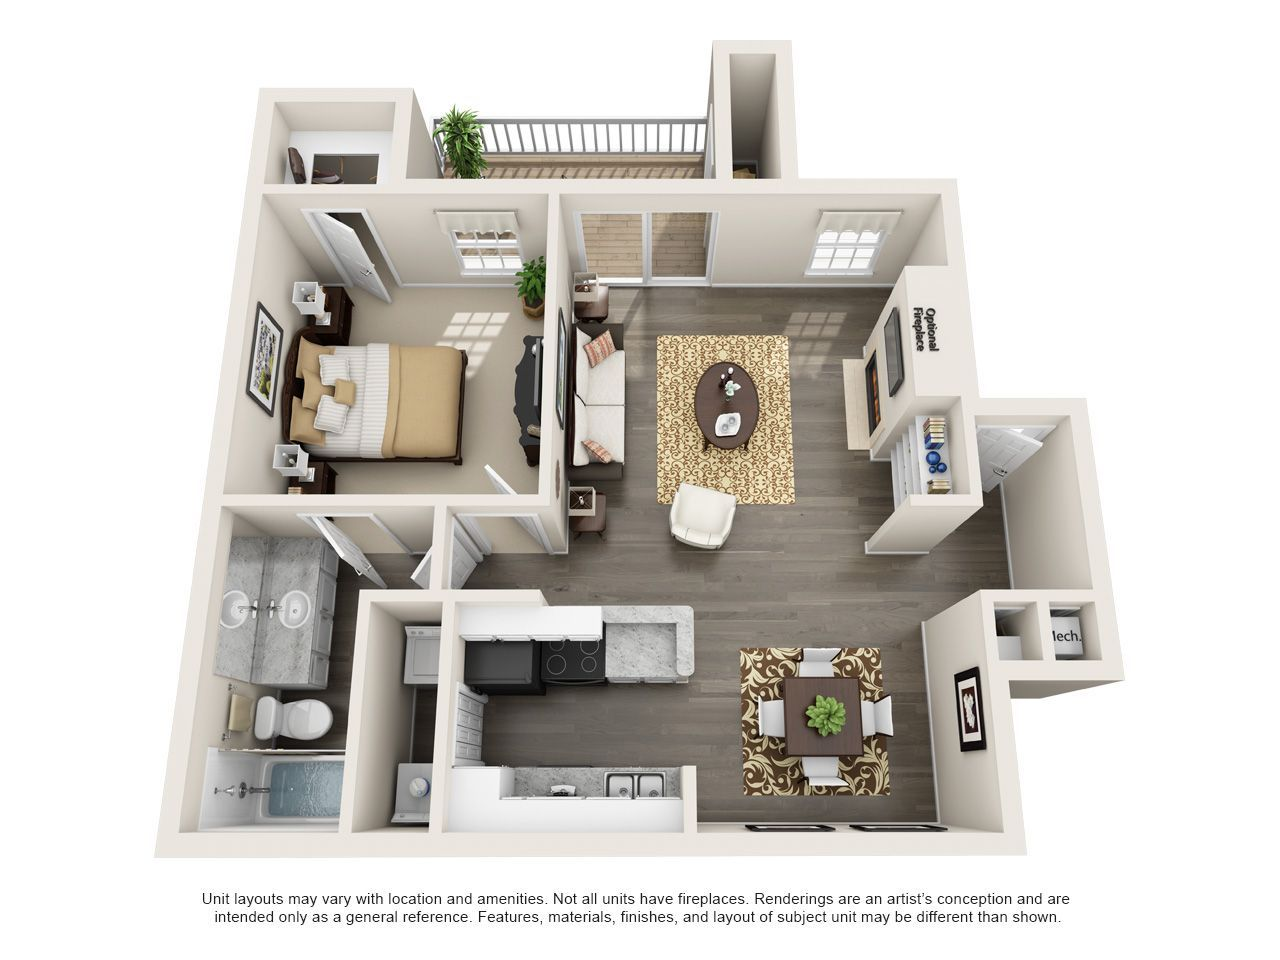 One, Two, and Three Bedroom Apartments in Mauldin, SC    #mauldin #southcarolina #apartment #steadfast#apartment #apartments #bedroom #mauldin #southcarolina #steadfast #three